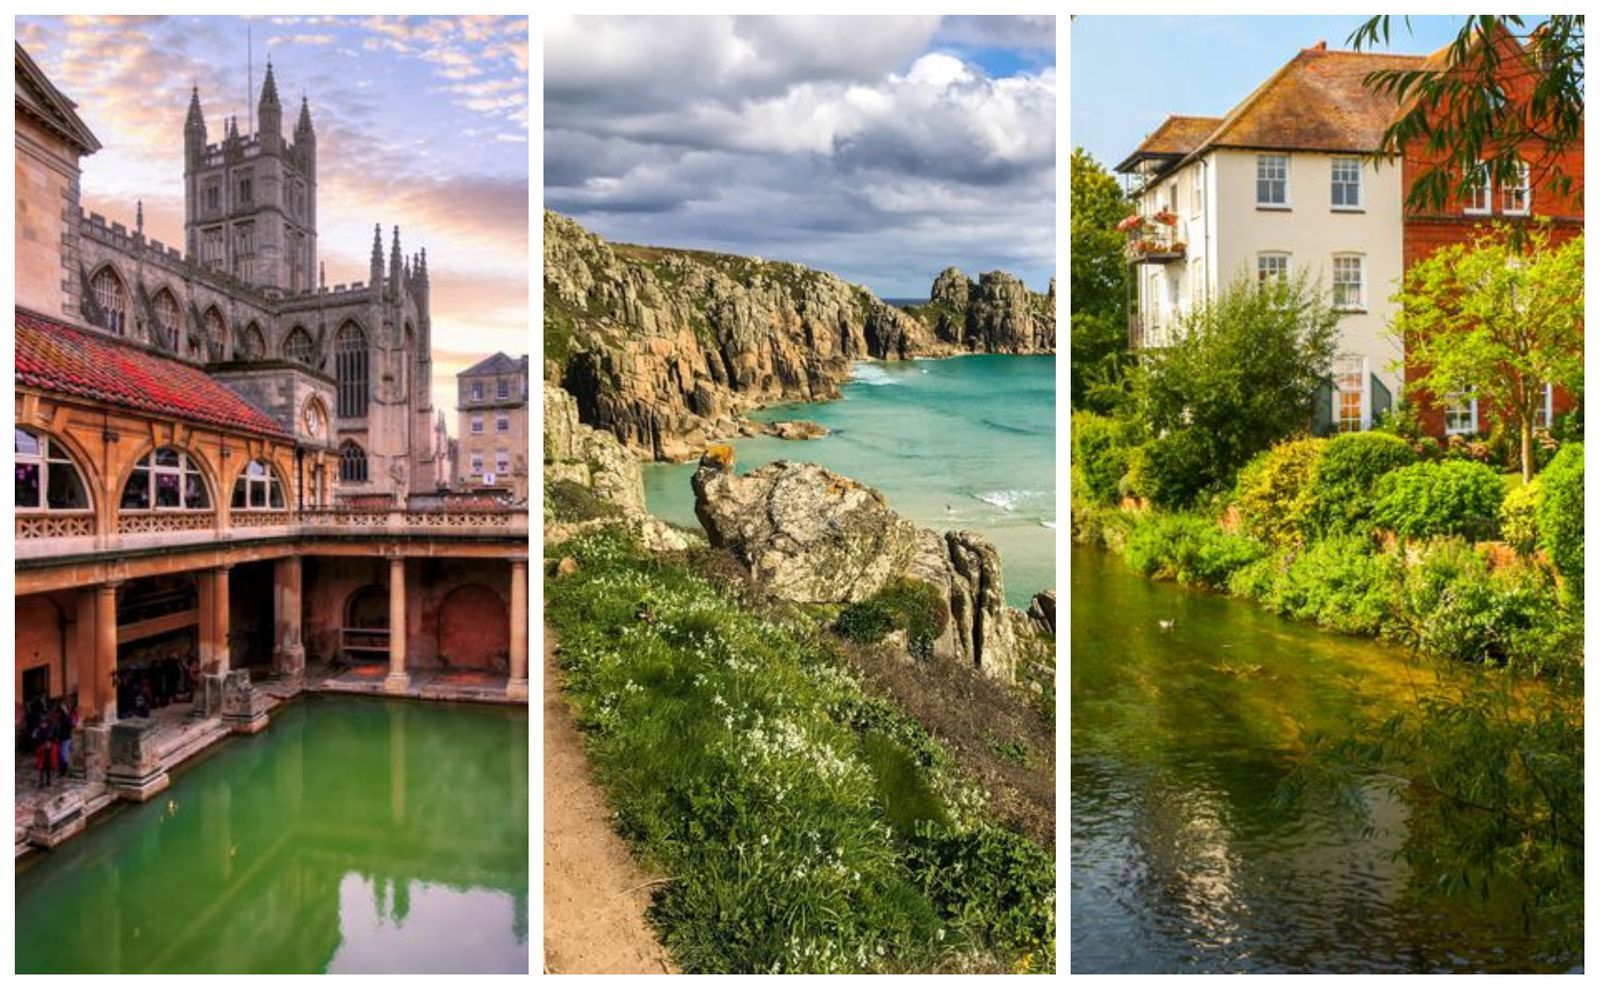 These Are The Top 10 Most Picturesque Towns Villages And Cities